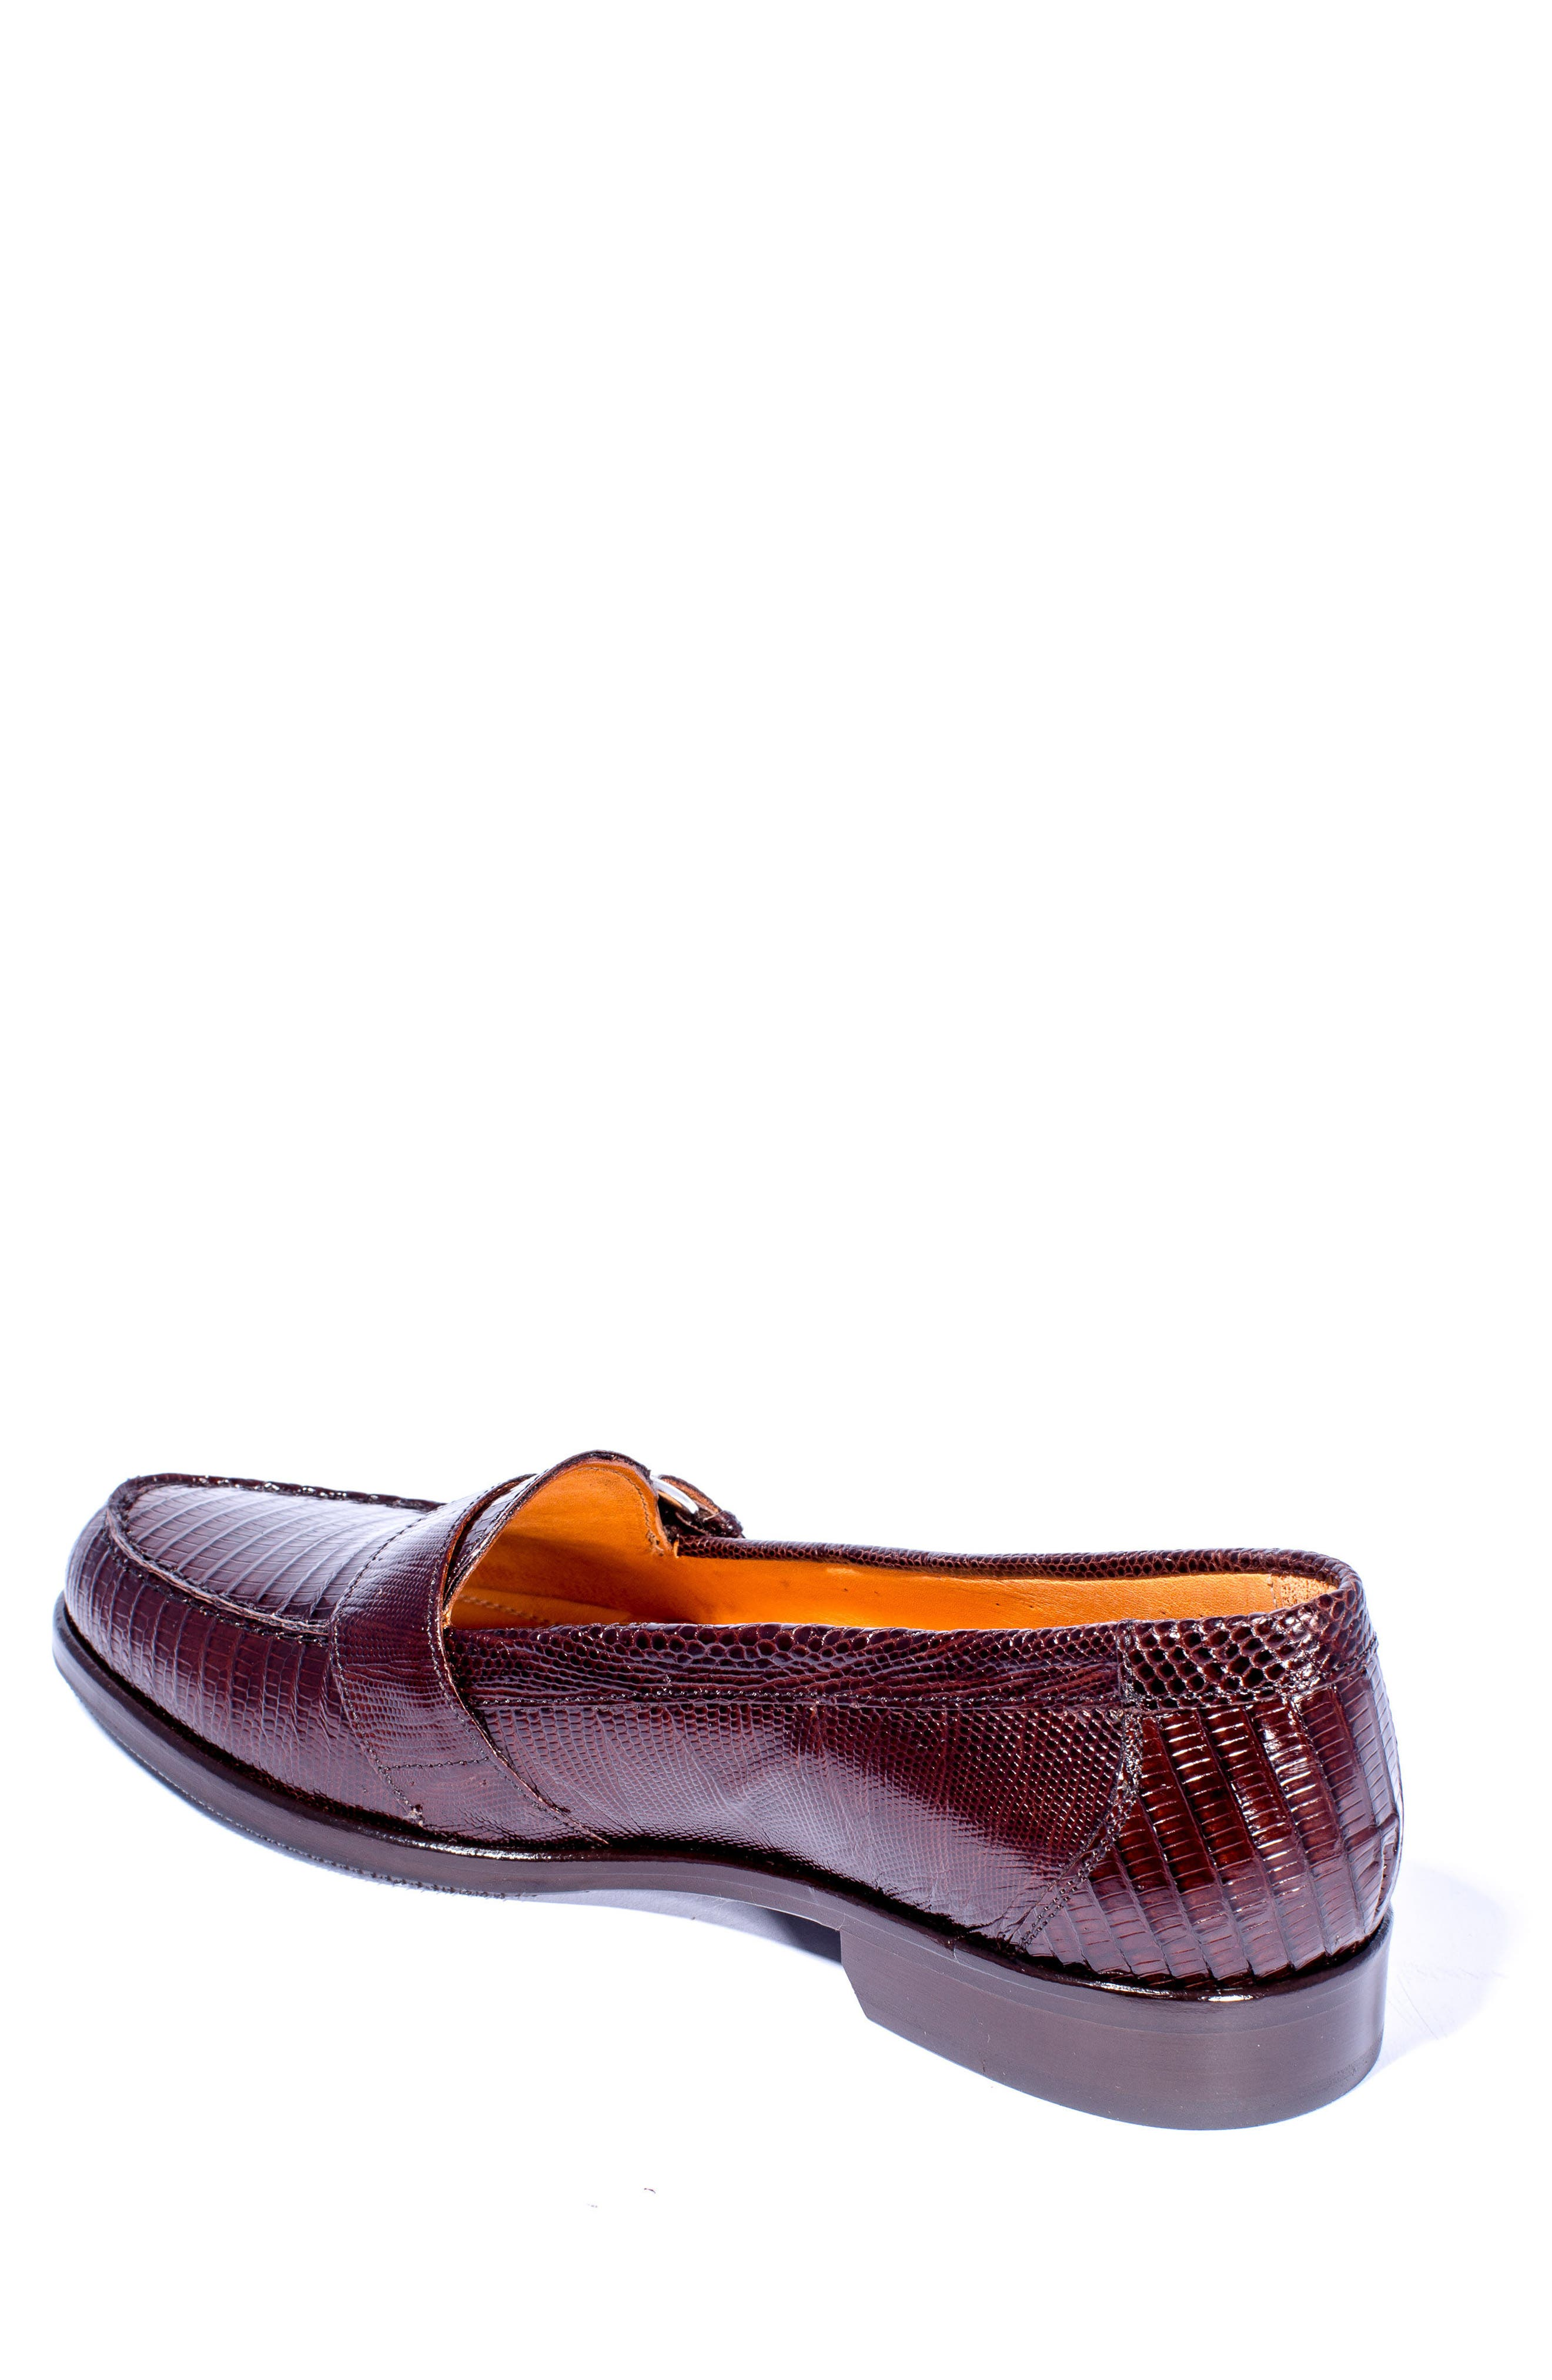 Orlando Teju Ostrich Loafer,                             Alternate thumbnail 4, color,